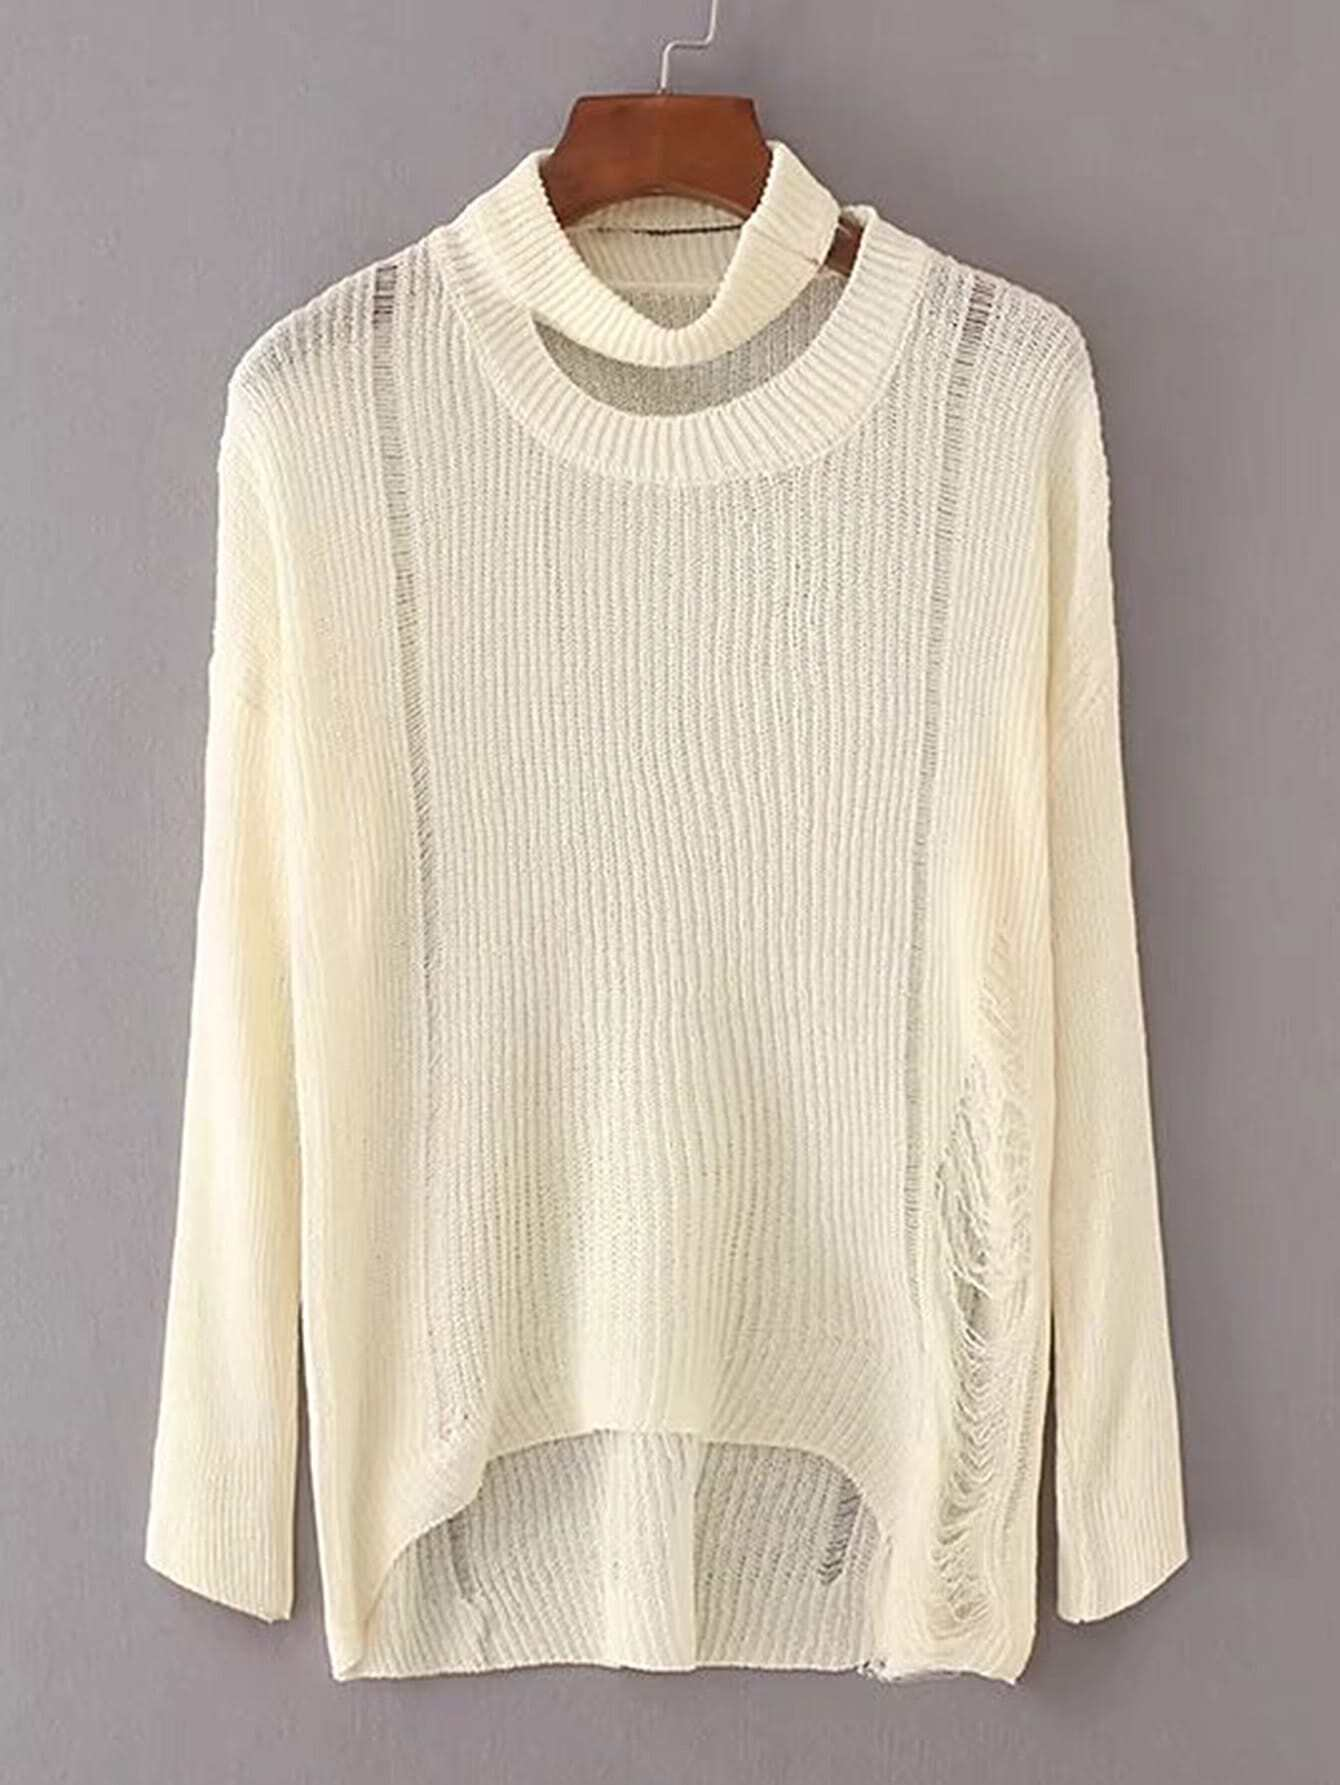 Choker Neck Ripped Detail High Low Knitwear sweater170719202